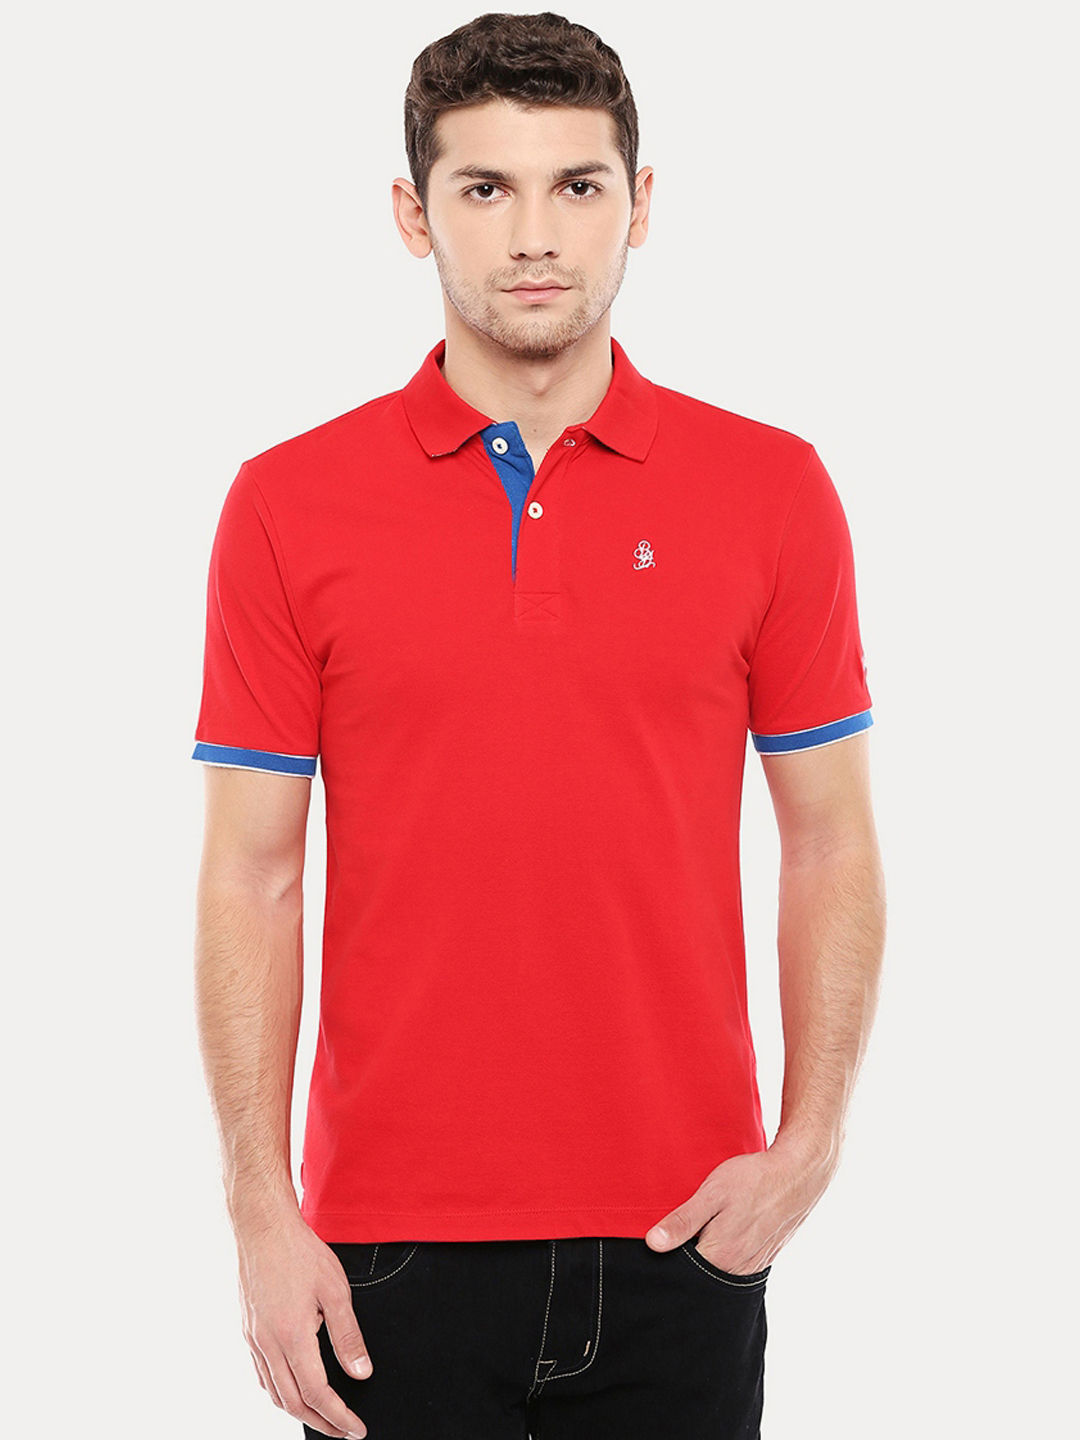 TANGO RED SOLID POLO T-SHIRT